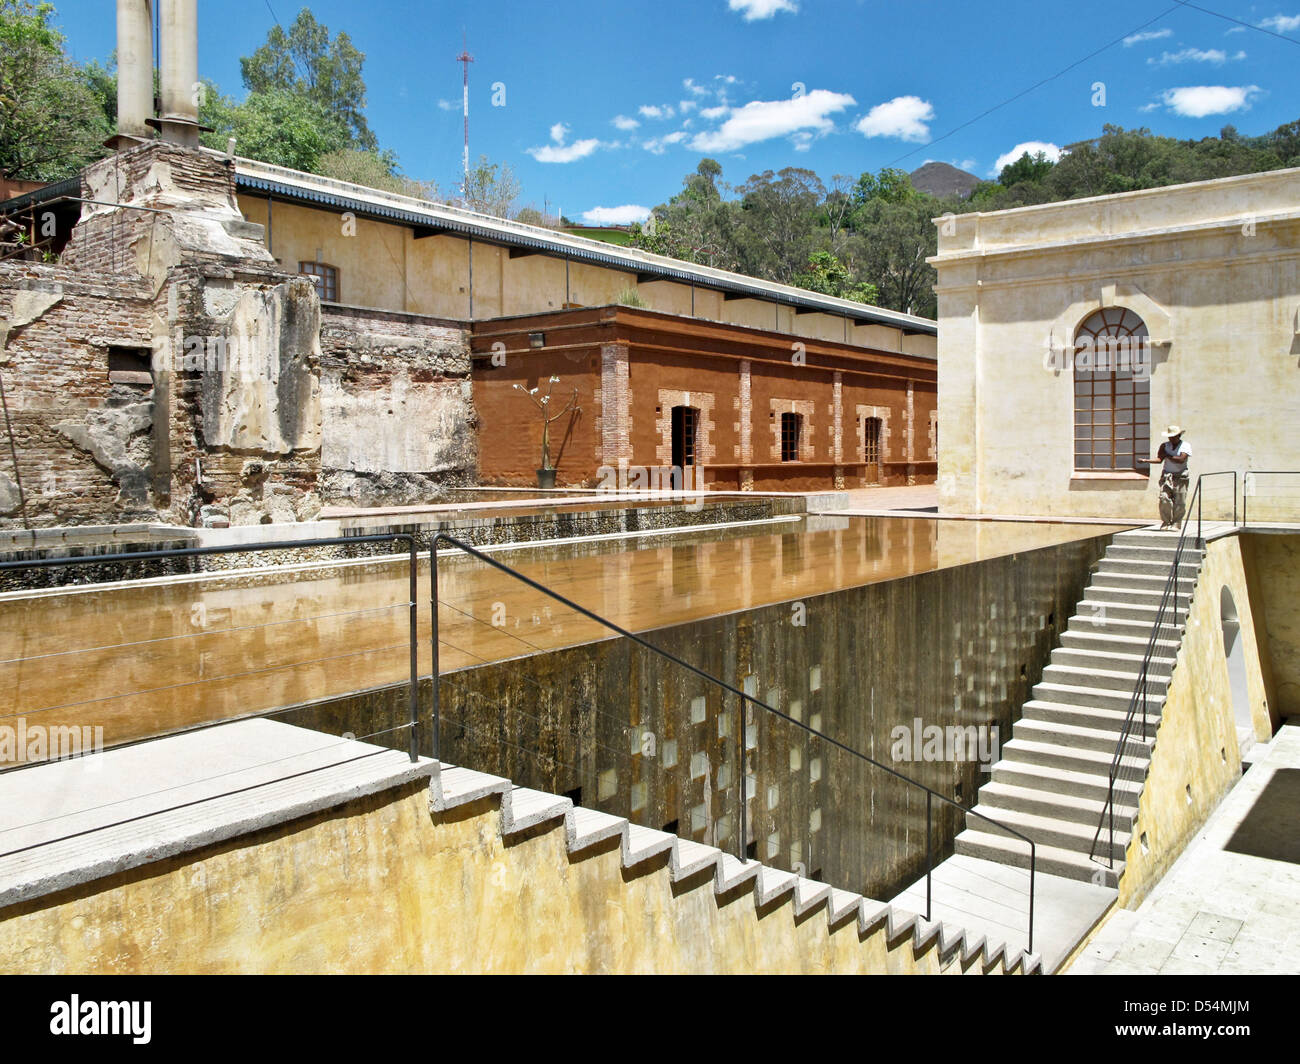 reflecting pool & spillway at staircase leading to entrance of Center for the Arts via the back of converted textile Stock Photo